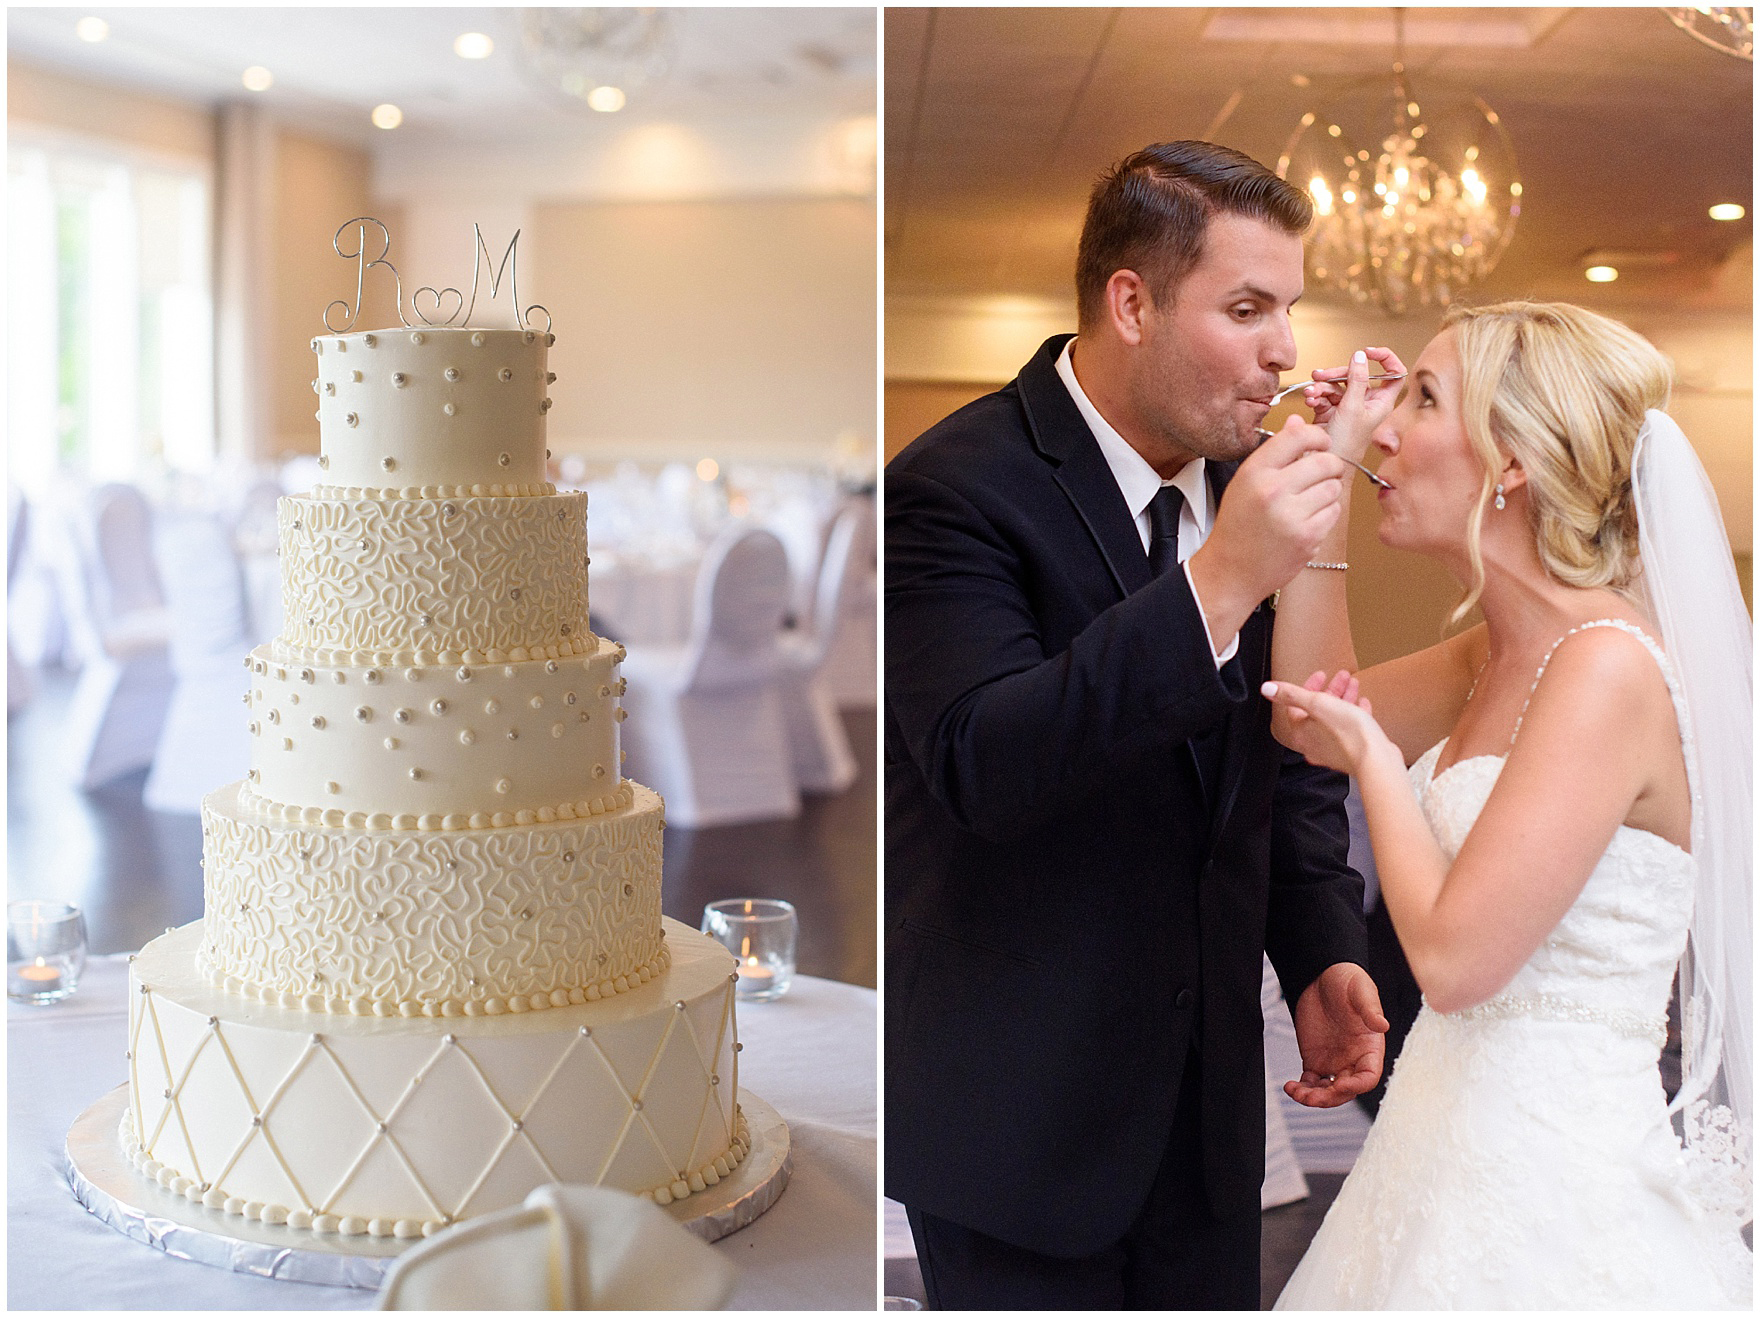 The bride and groom sample their wedding cake by Oak Mills Bakery at an Itasca Country Club Illinois wedding.